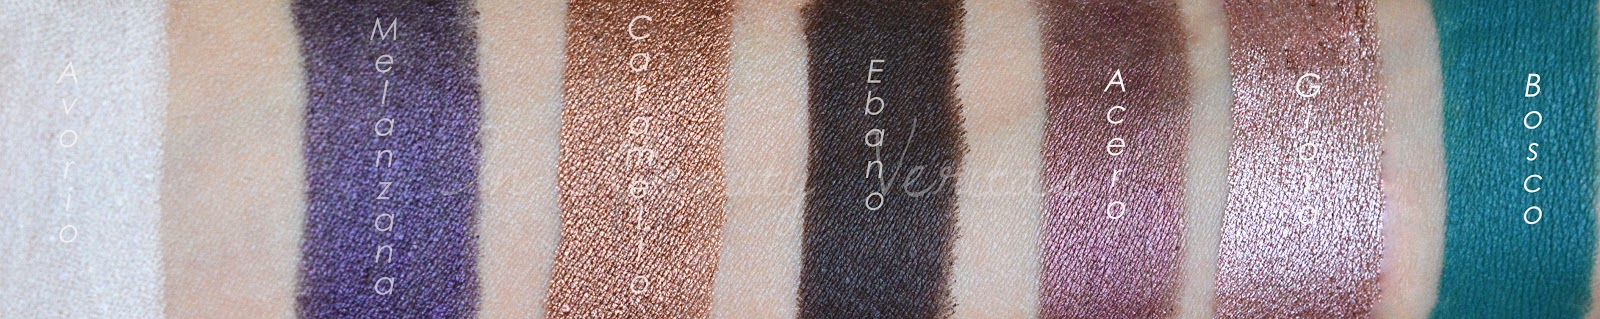 swatches pastelli neve cosmetics, swatches pastello revolution neve cosmetics, swatches pastello bosco neve cosmetics, pastello revolution neve cosmetics, swatches matite occhi neve cosmetics